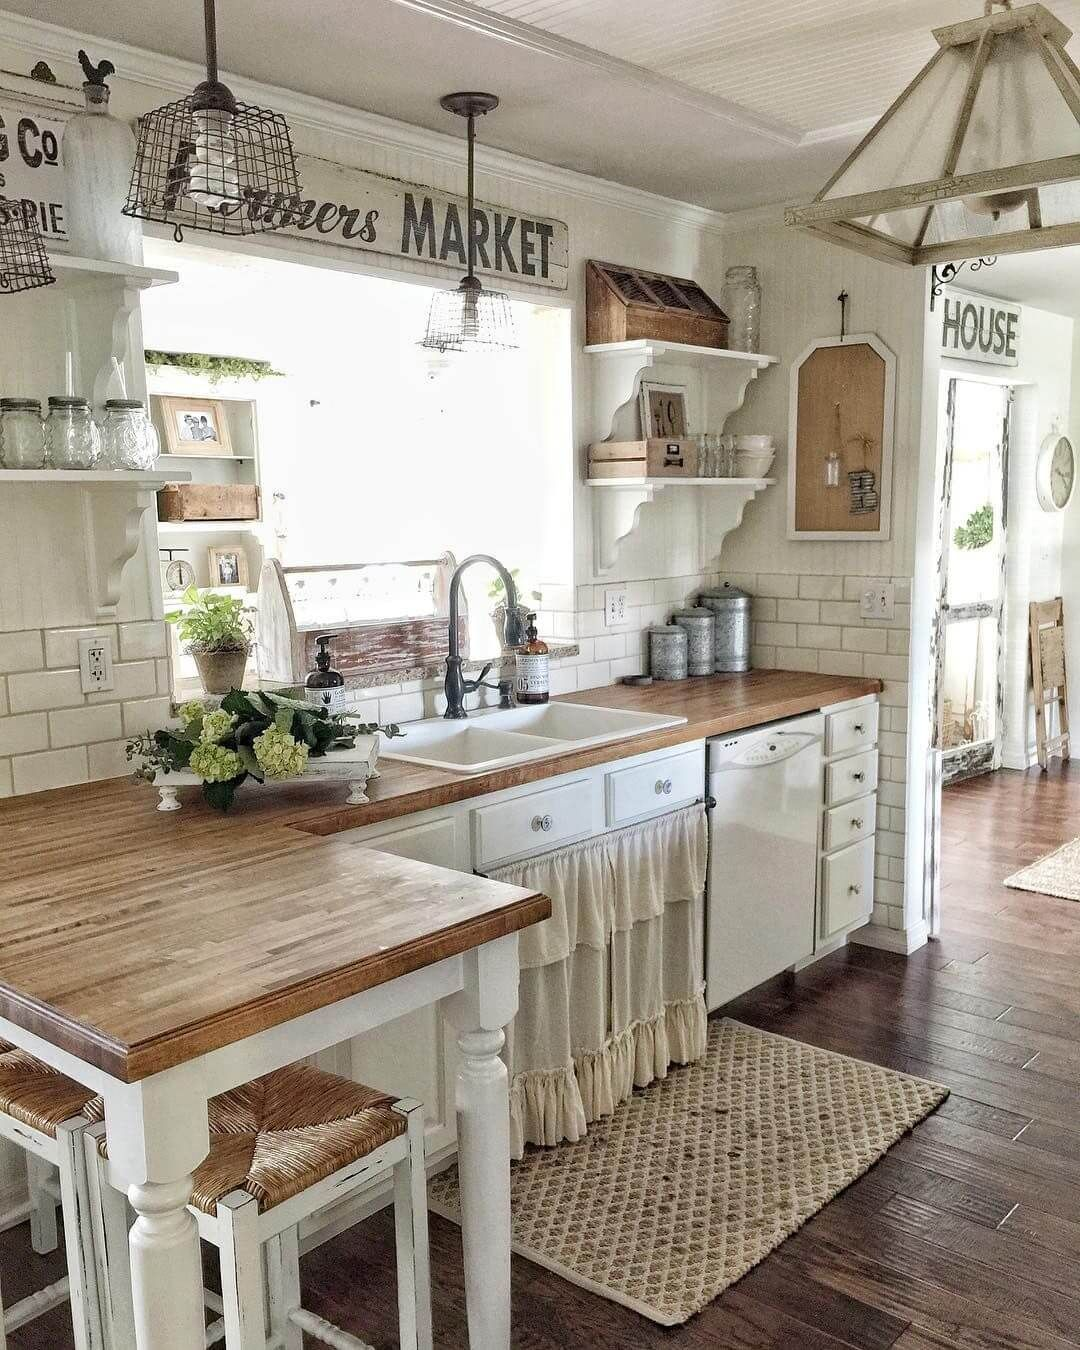 Lightly Rustic Off-White Farmhouse Kitchen Cabinets #cat1 #beautyhavk #hacksbeauty #mediterraneanhome #makeupeveryday #beautyandthebeast #makeupsteps #rustichomeideas #rustic #farmhouse #kitchen #lightly #offwhite #cabinets